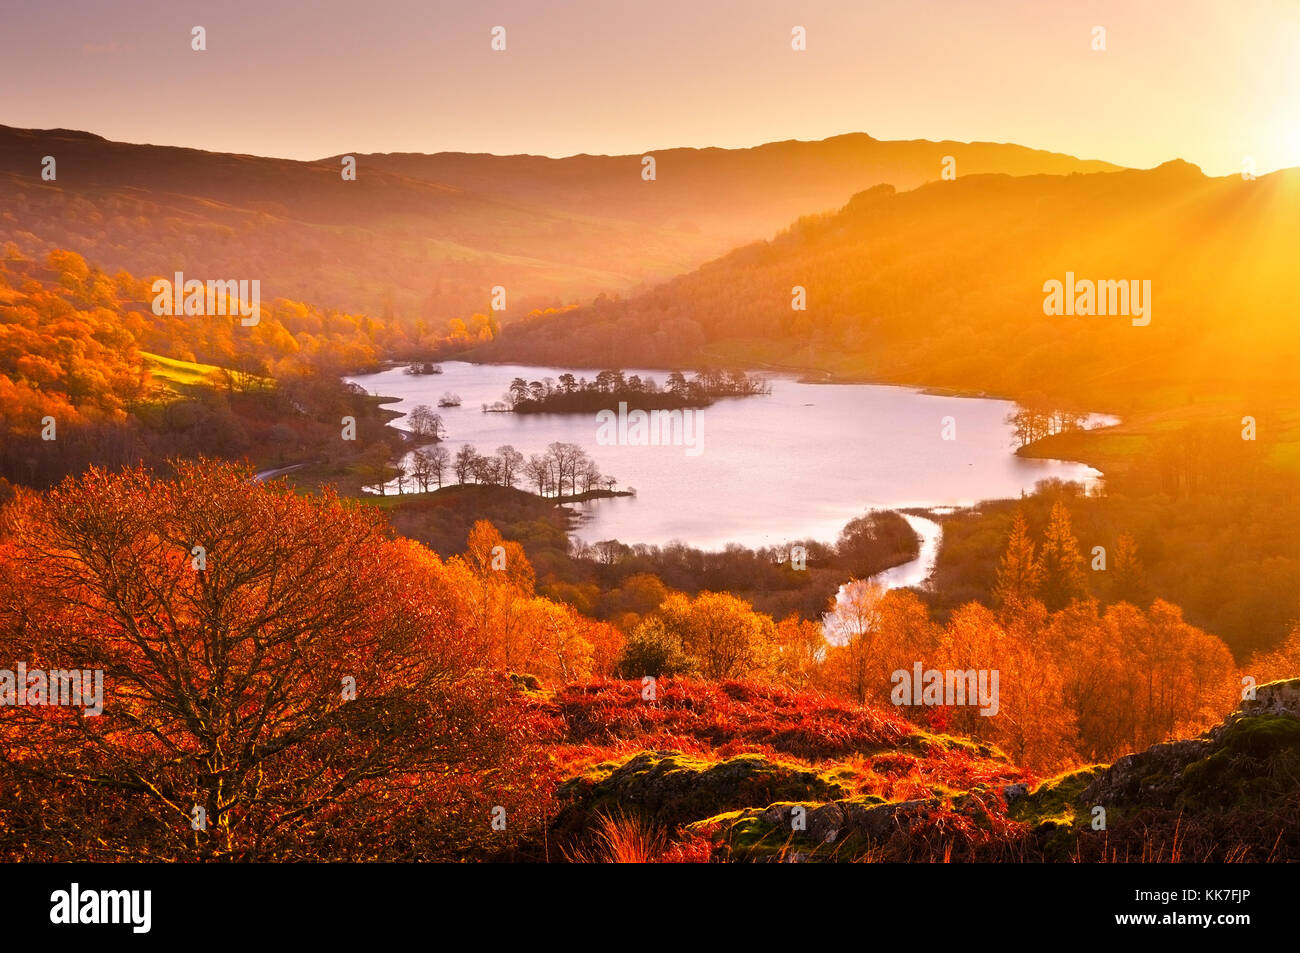 Rydal Water at sunrise, Lake District, UK.  Elevated view overlooking the beautiful lake and autumn landscape from - Stock Image